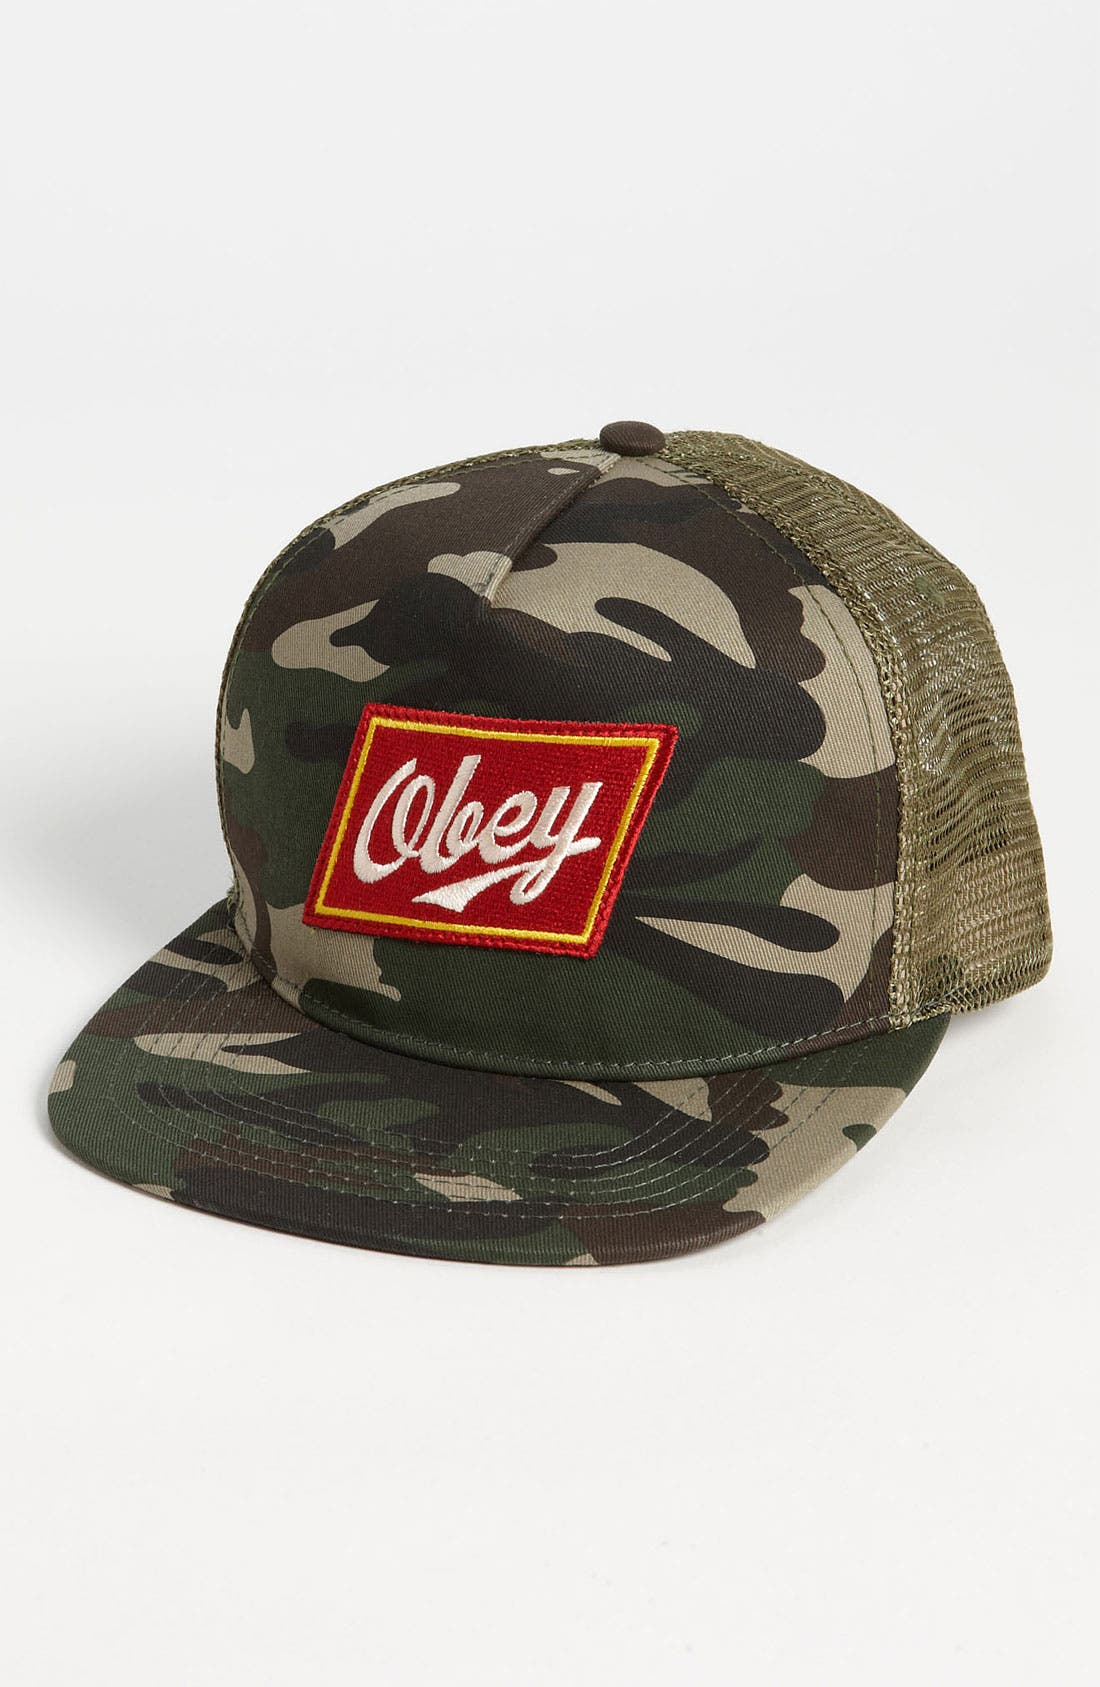 Alternate Image 1 Selected - Obey Trucker Hat